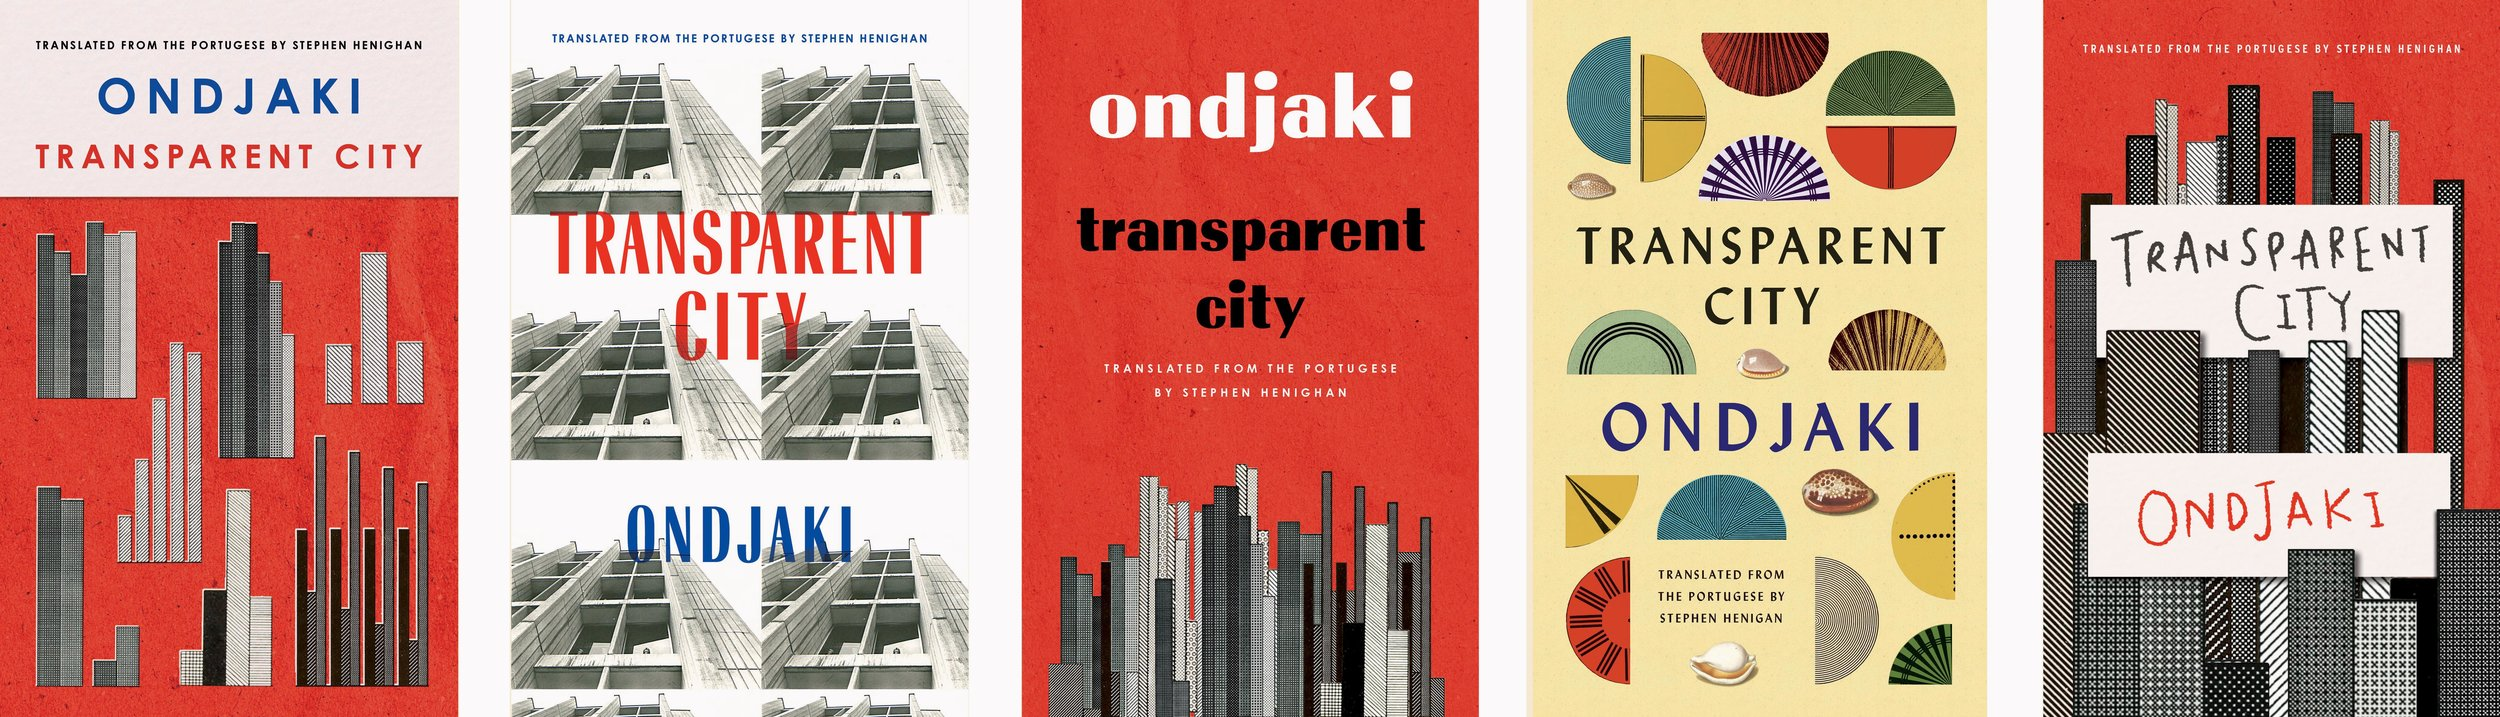 In January, I designed Transparent City for Biblioasis while living in Nicaragua.